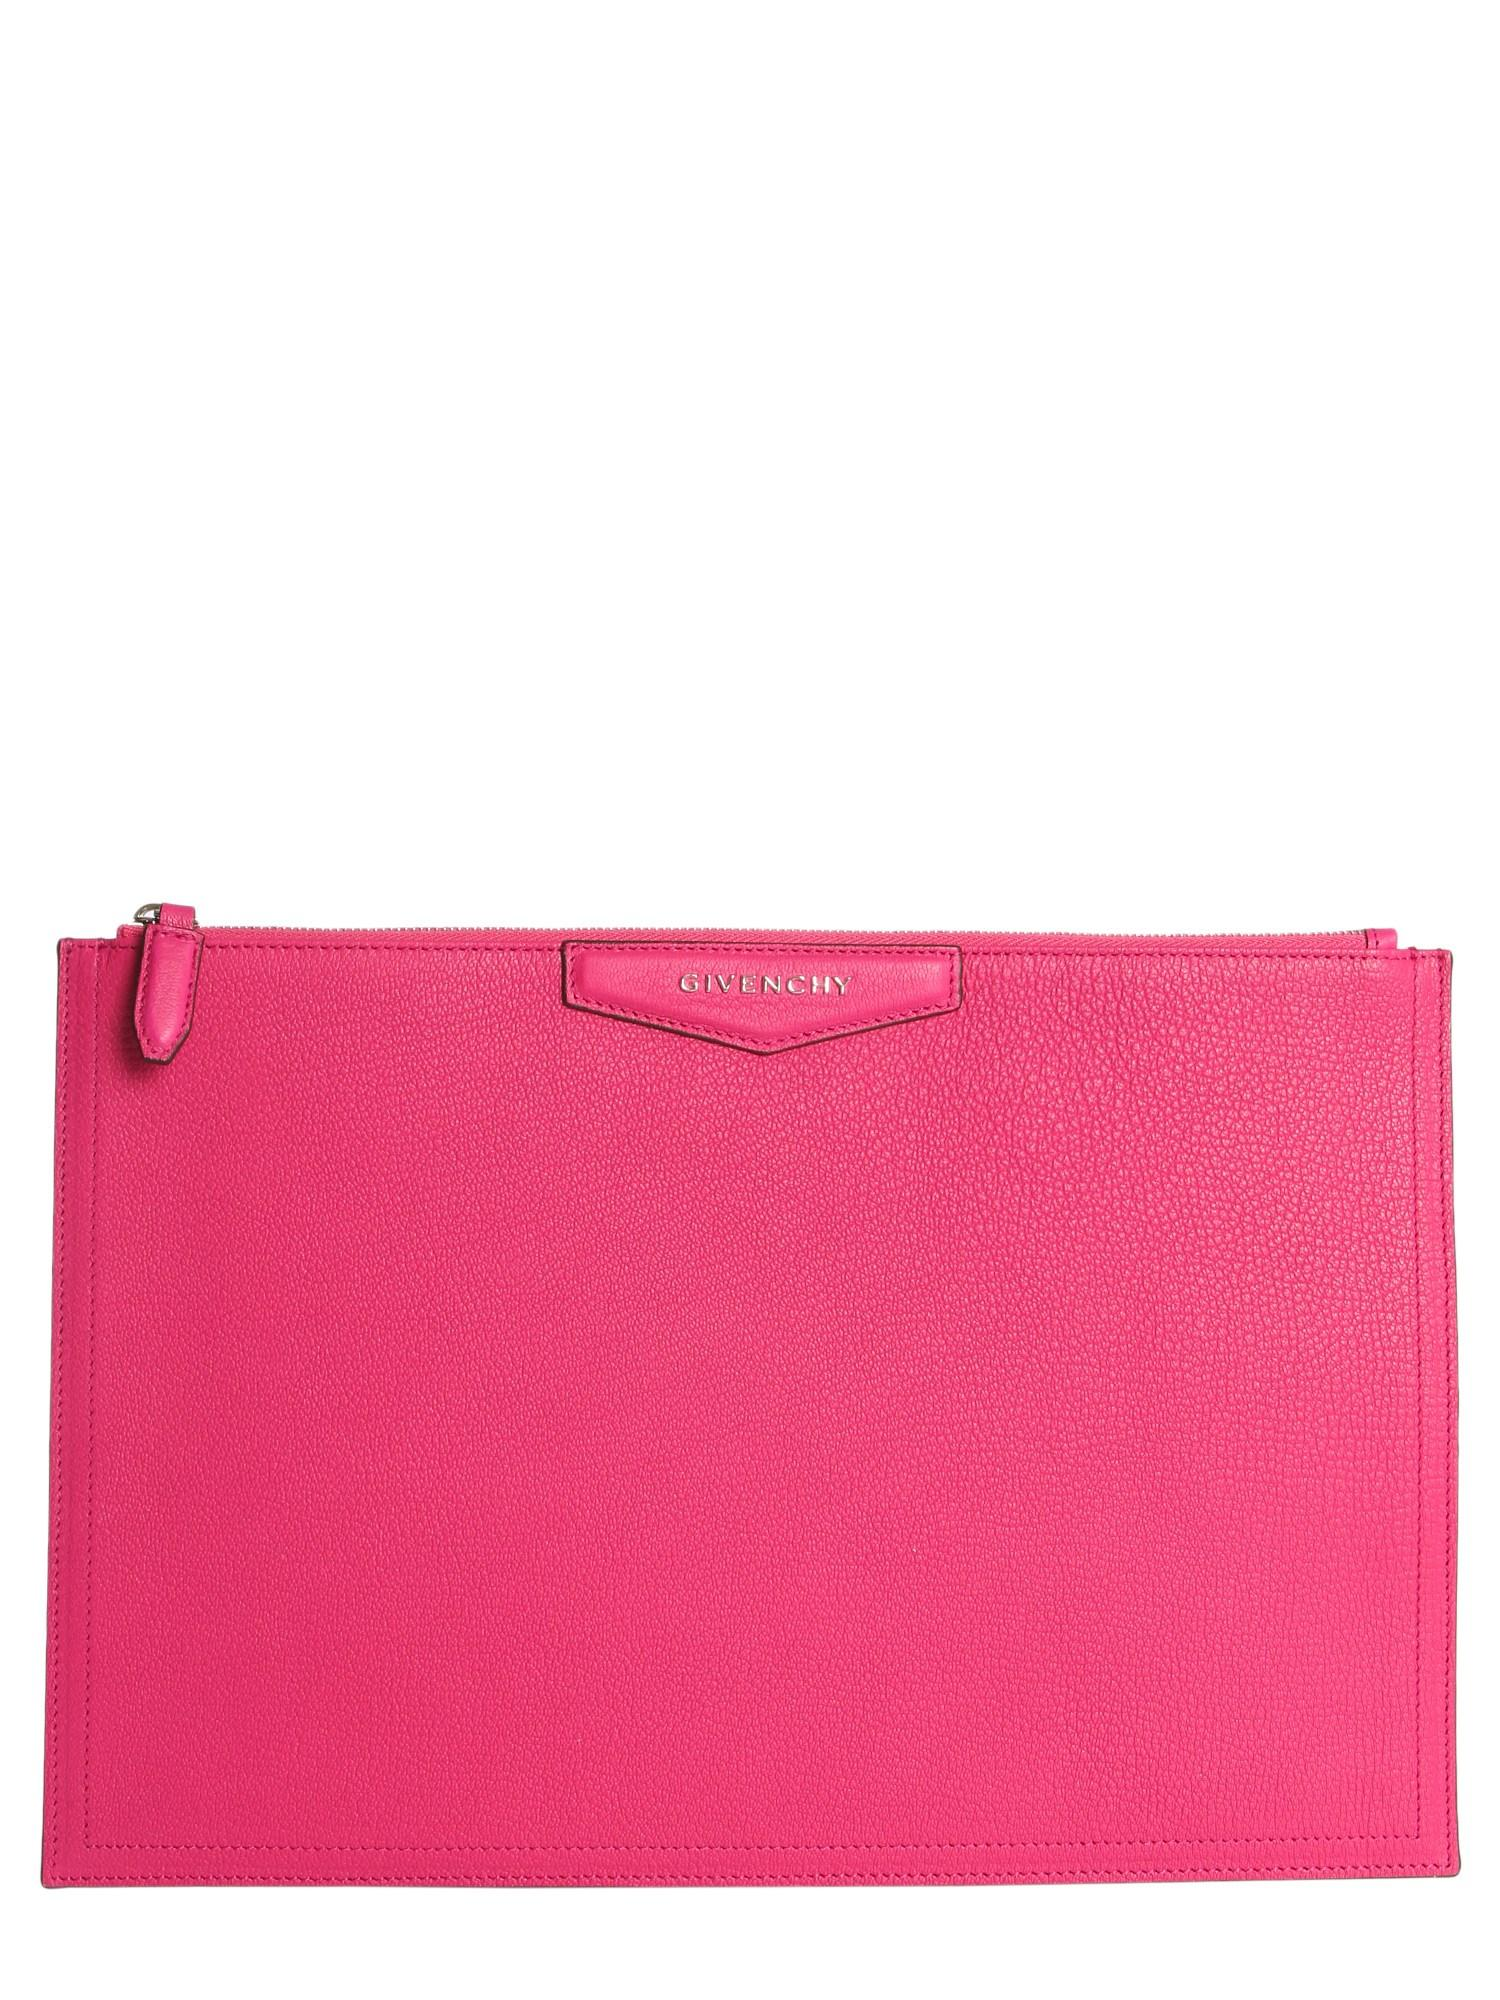 ce3a480205 Lyst - Givenchy Antigona Large Pouch in Pink - Save 55.5921052631579%